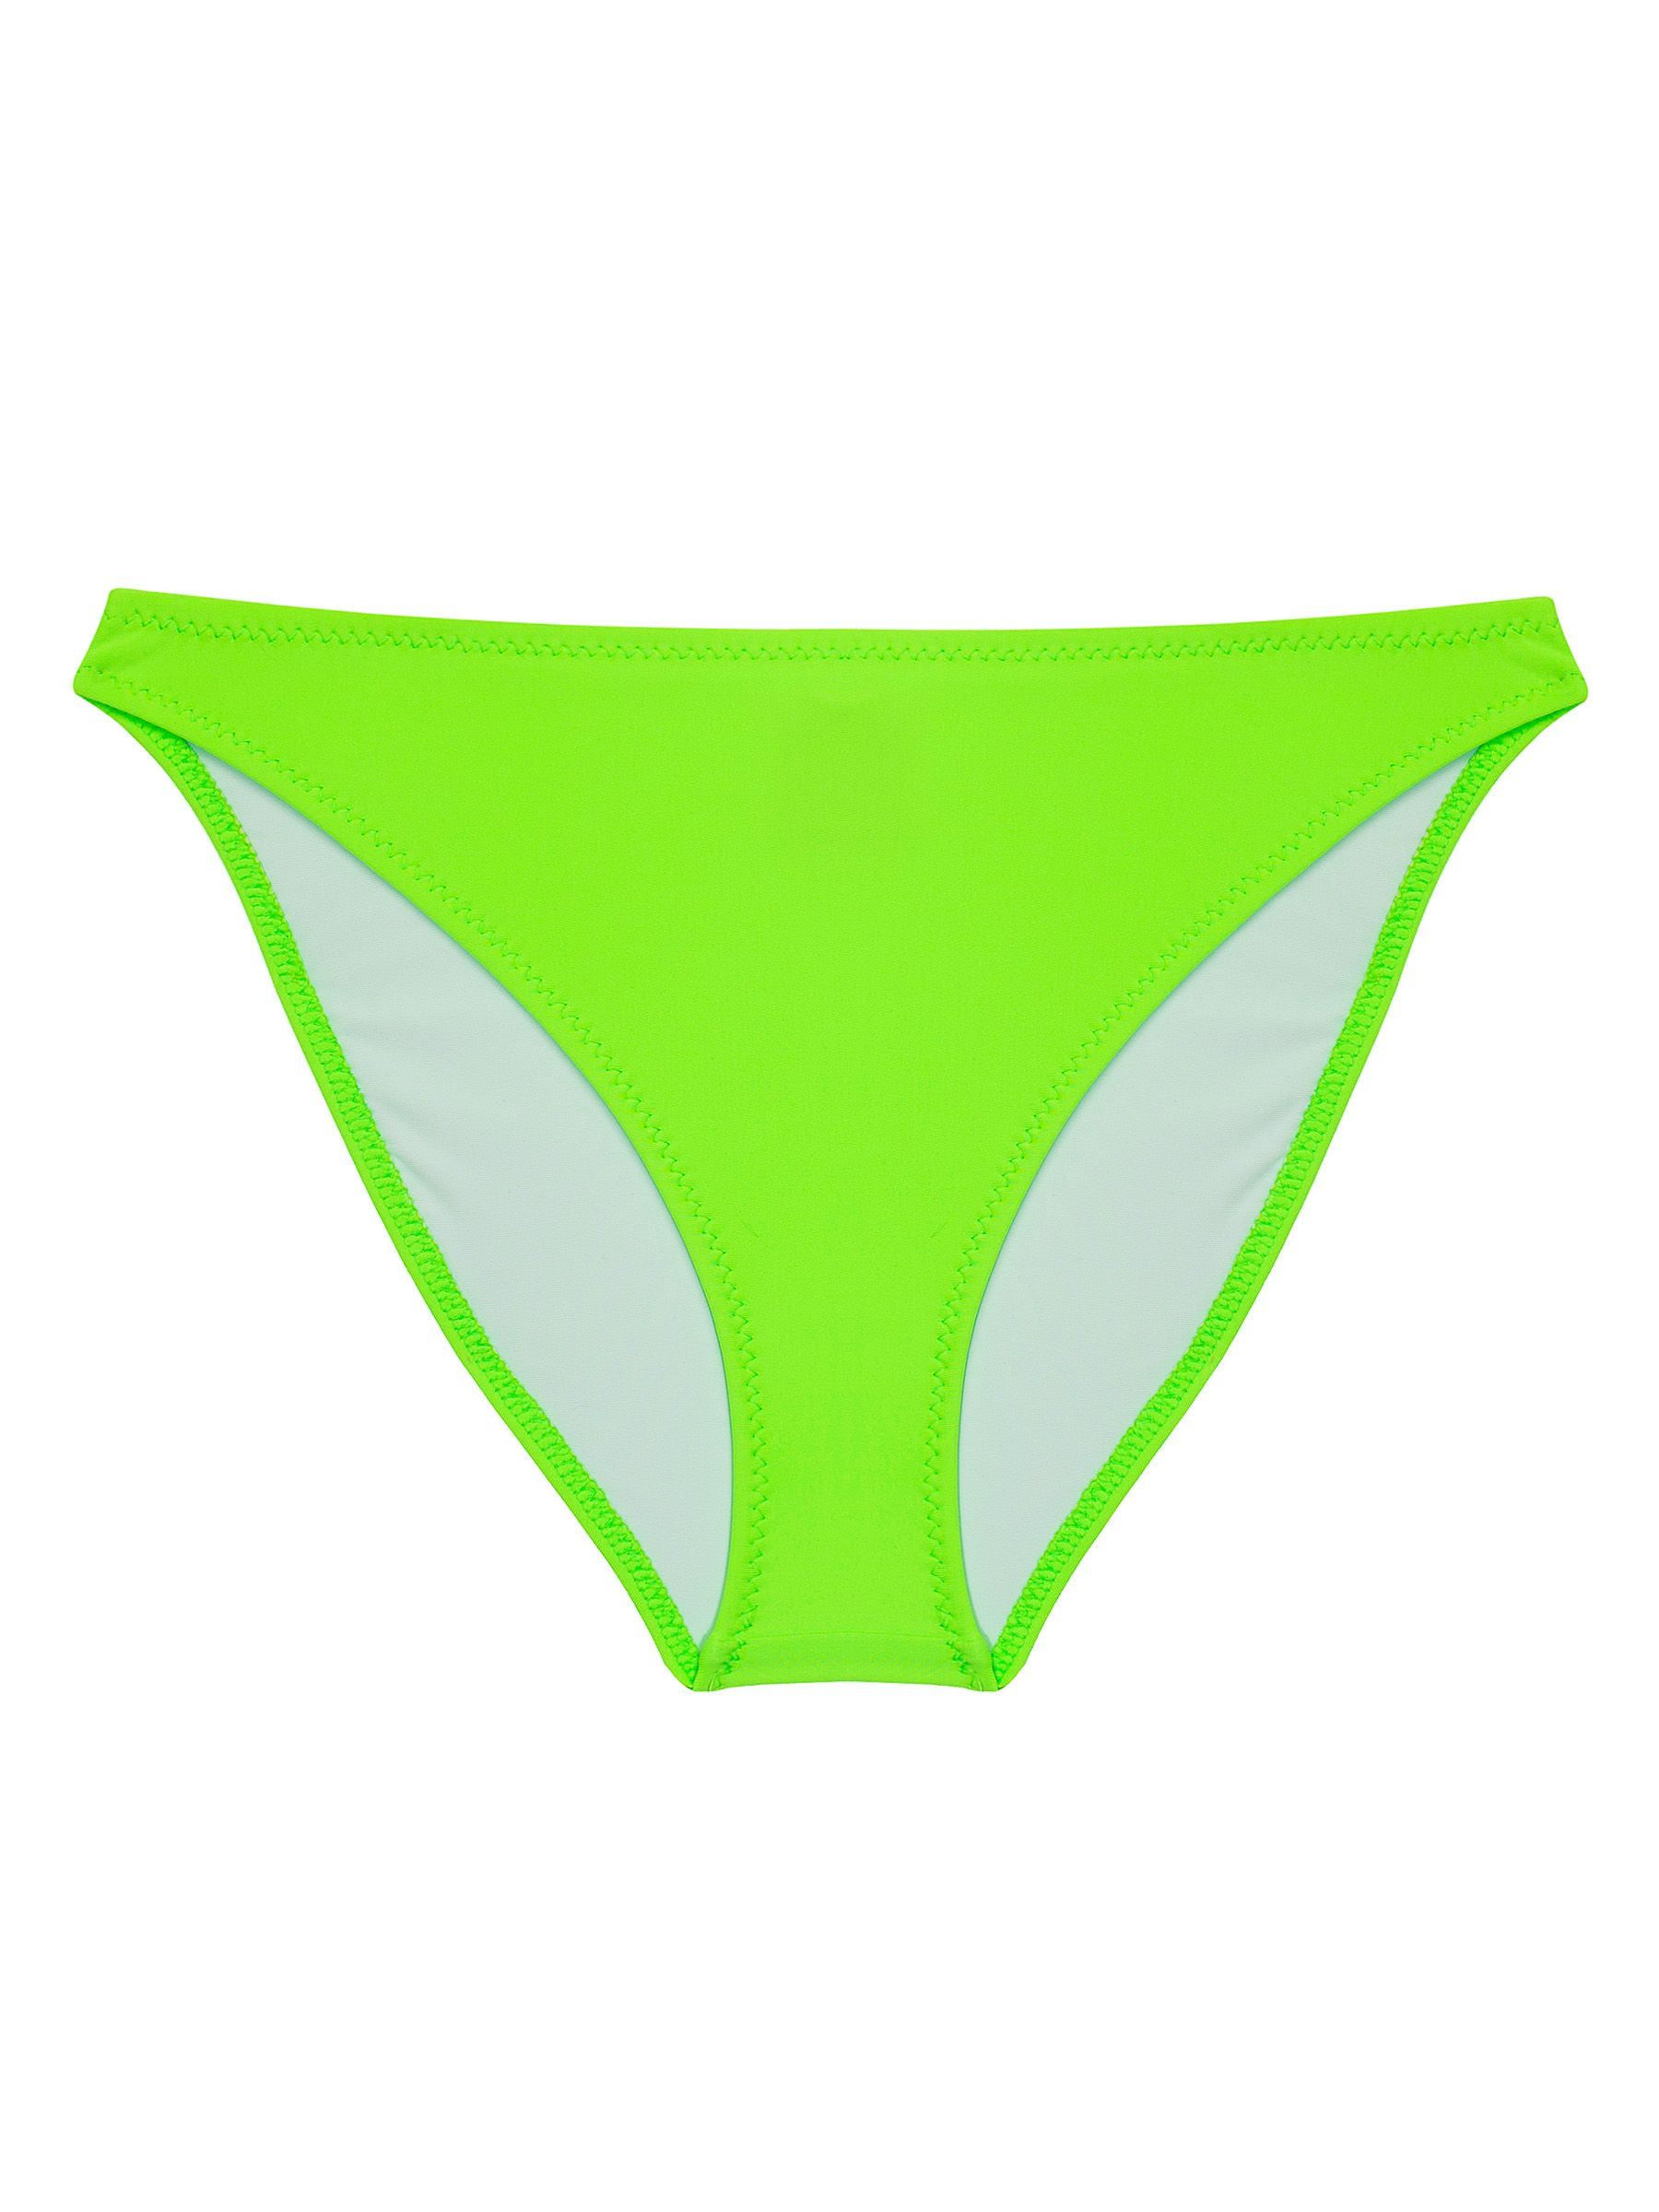 NEON GREEN BIKINI BRIEFS